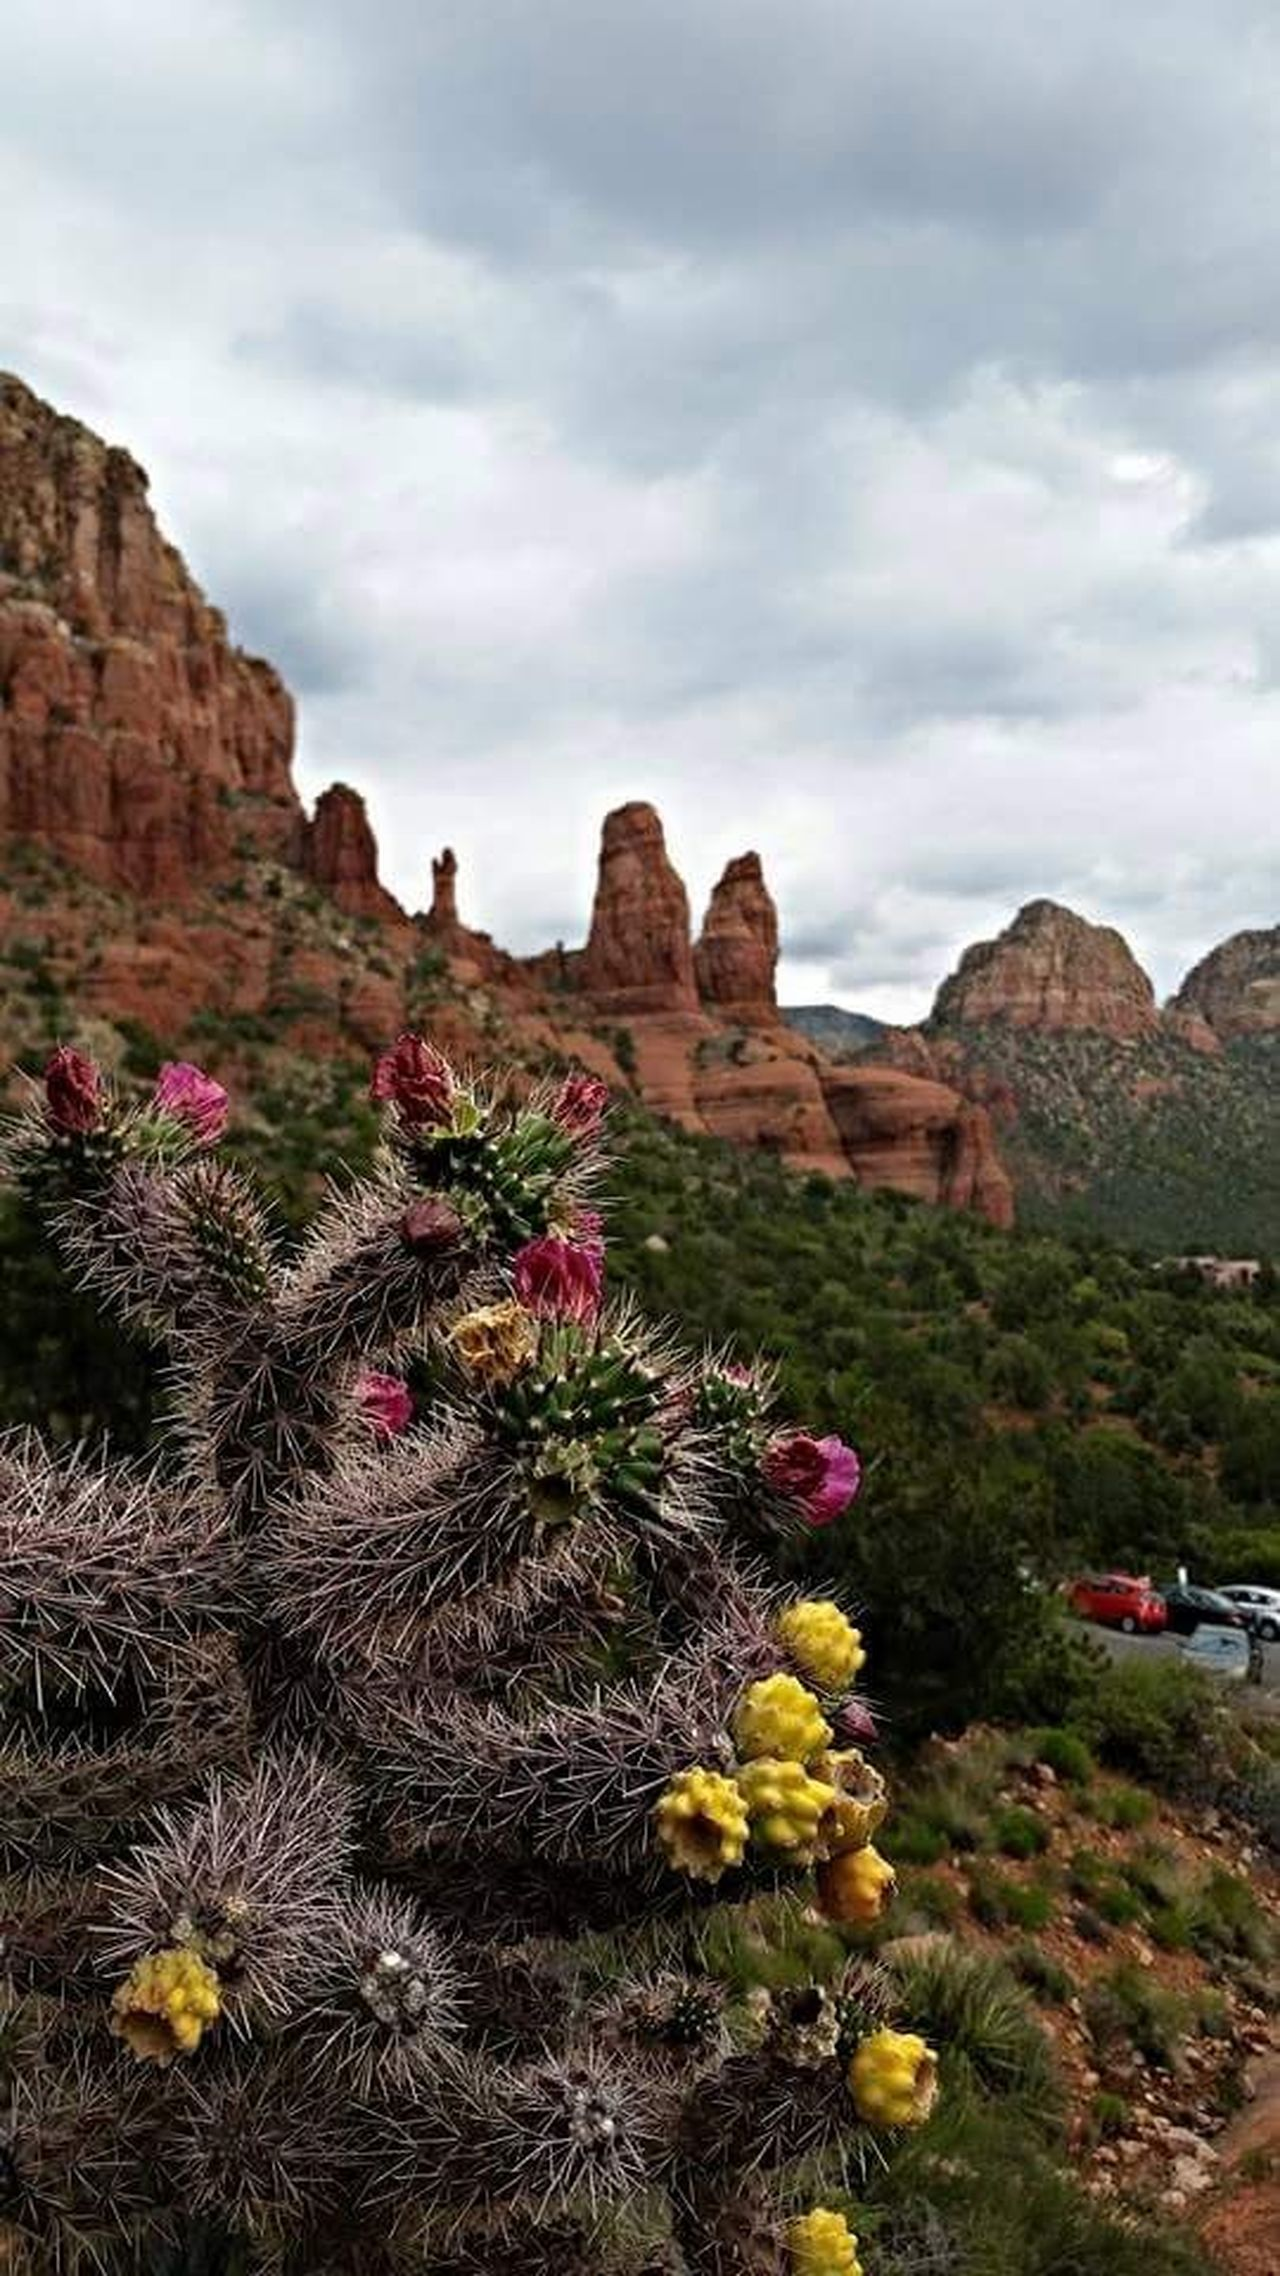 Travel Destinations Landscape Scenics Beauty In Nature Outdoors Rock Formation Sedona, Arizona Cactus Redrocks No People Sky Nature_collection Travel Arizona Landscape Landscape_lovers Sonoran Desert Hiking Trail